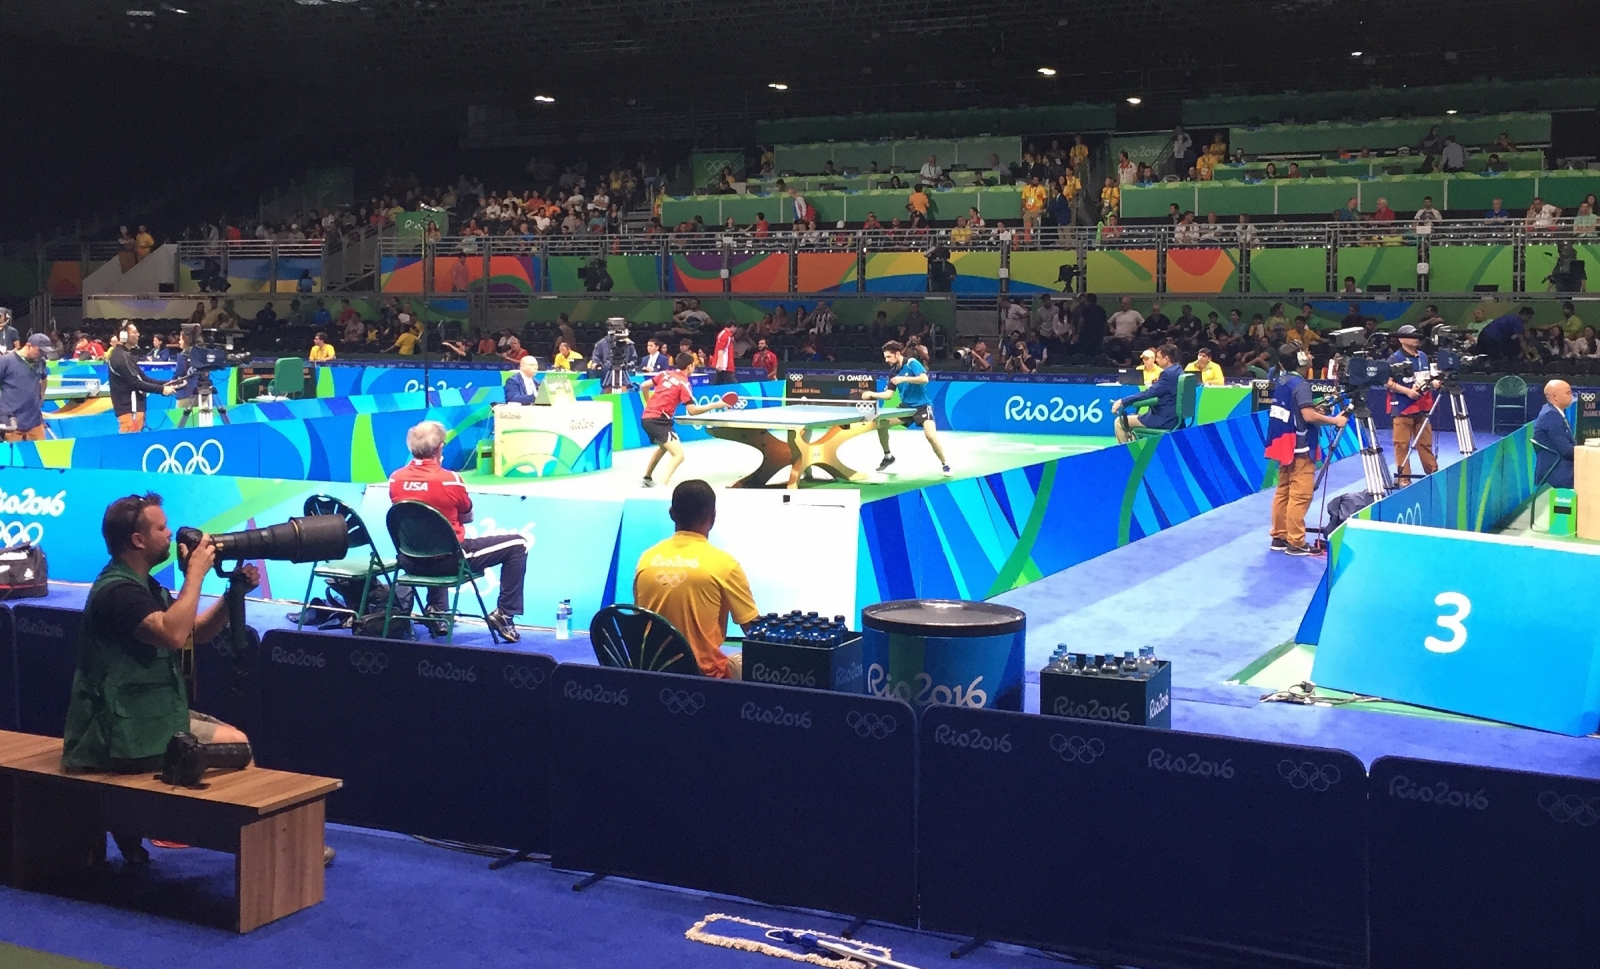 Rio 2016 table tennis